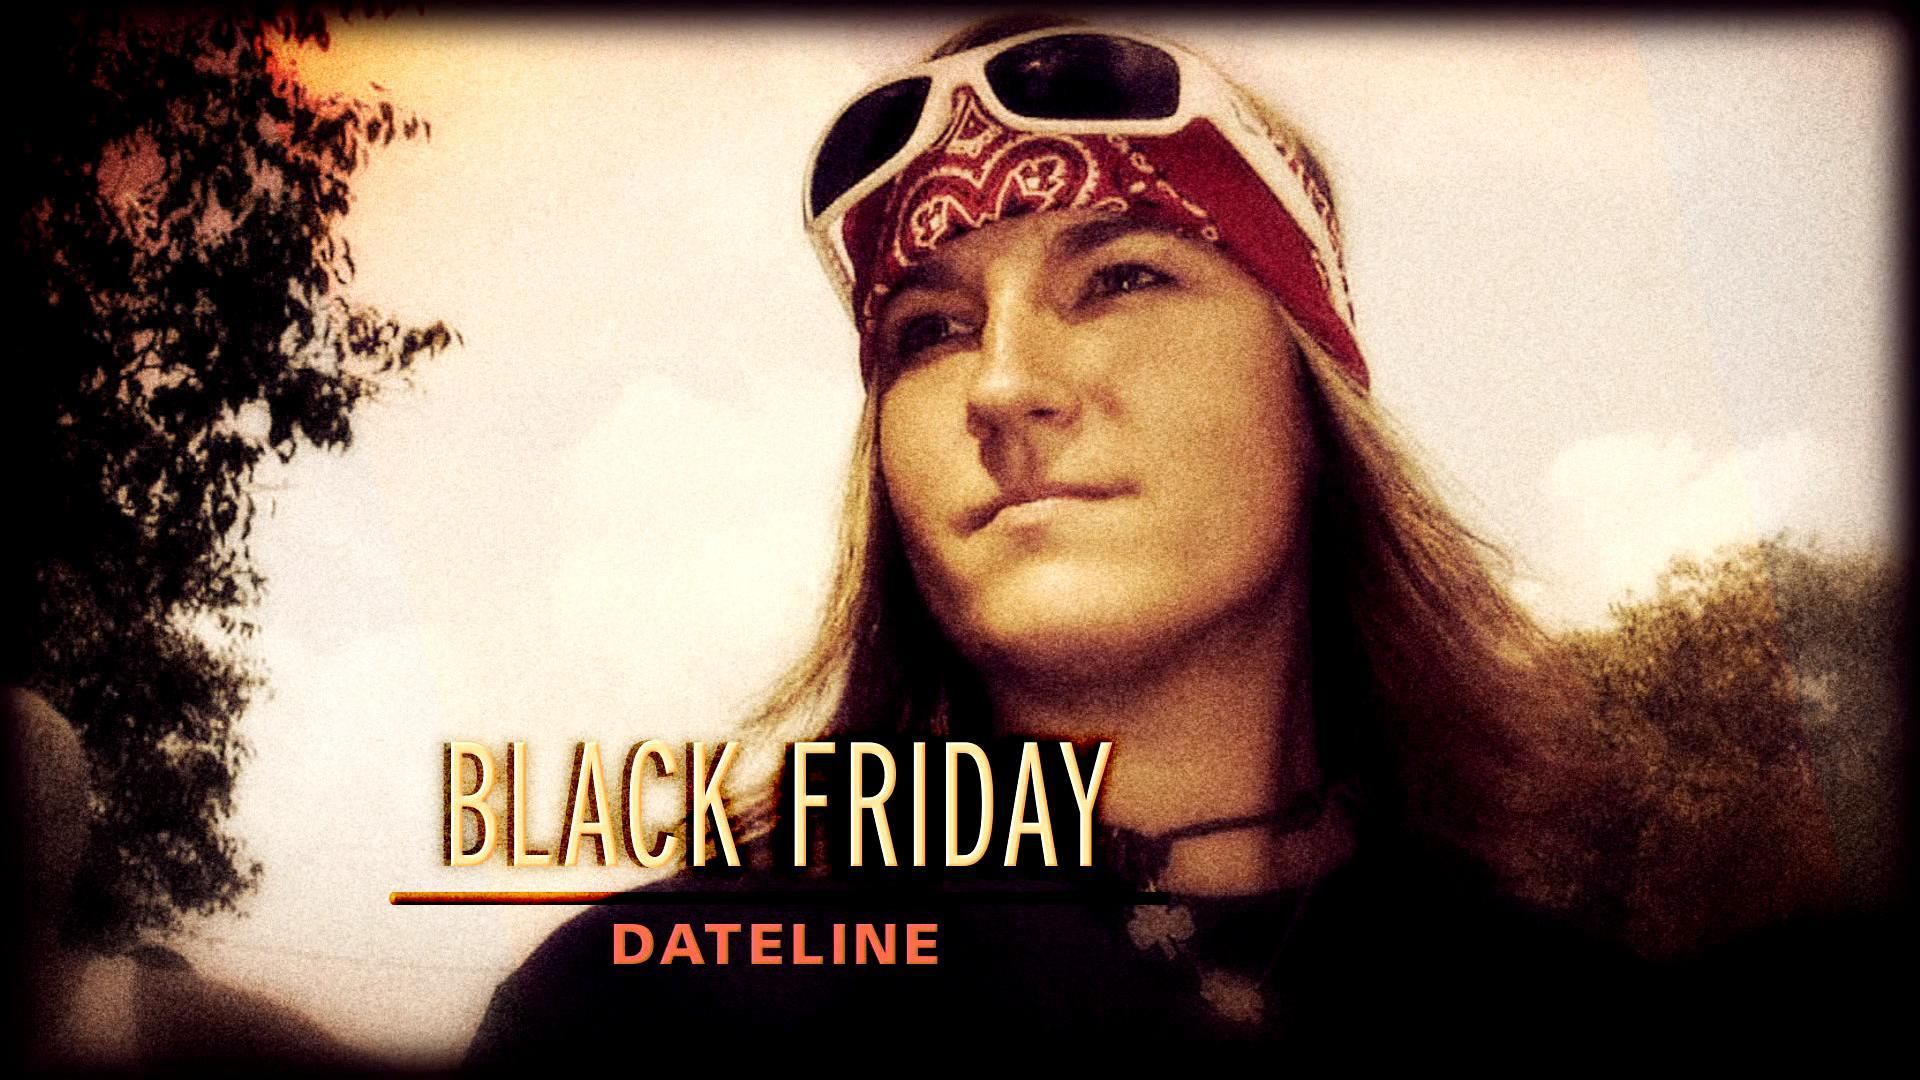 Dateline Episode Trailer Black Friday